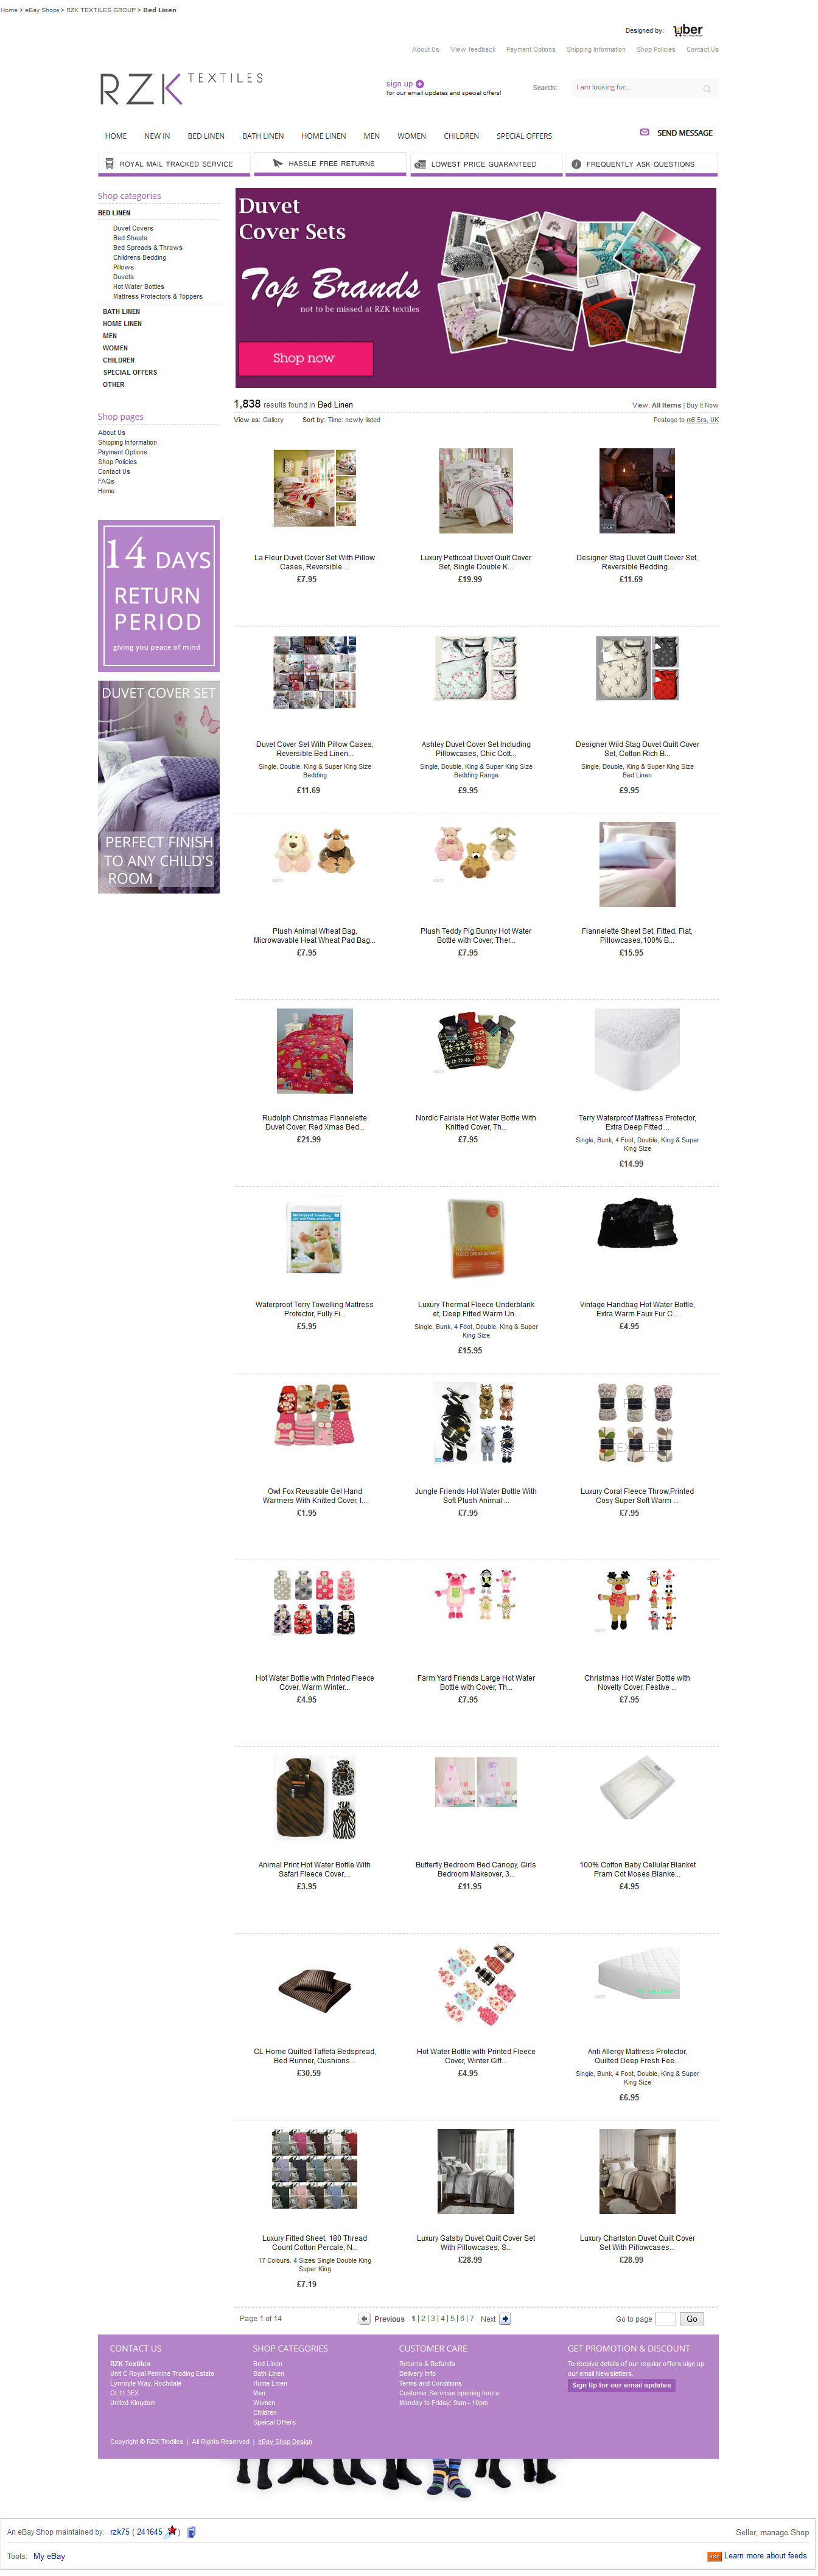 RZK_ebay-shop-design-category-view